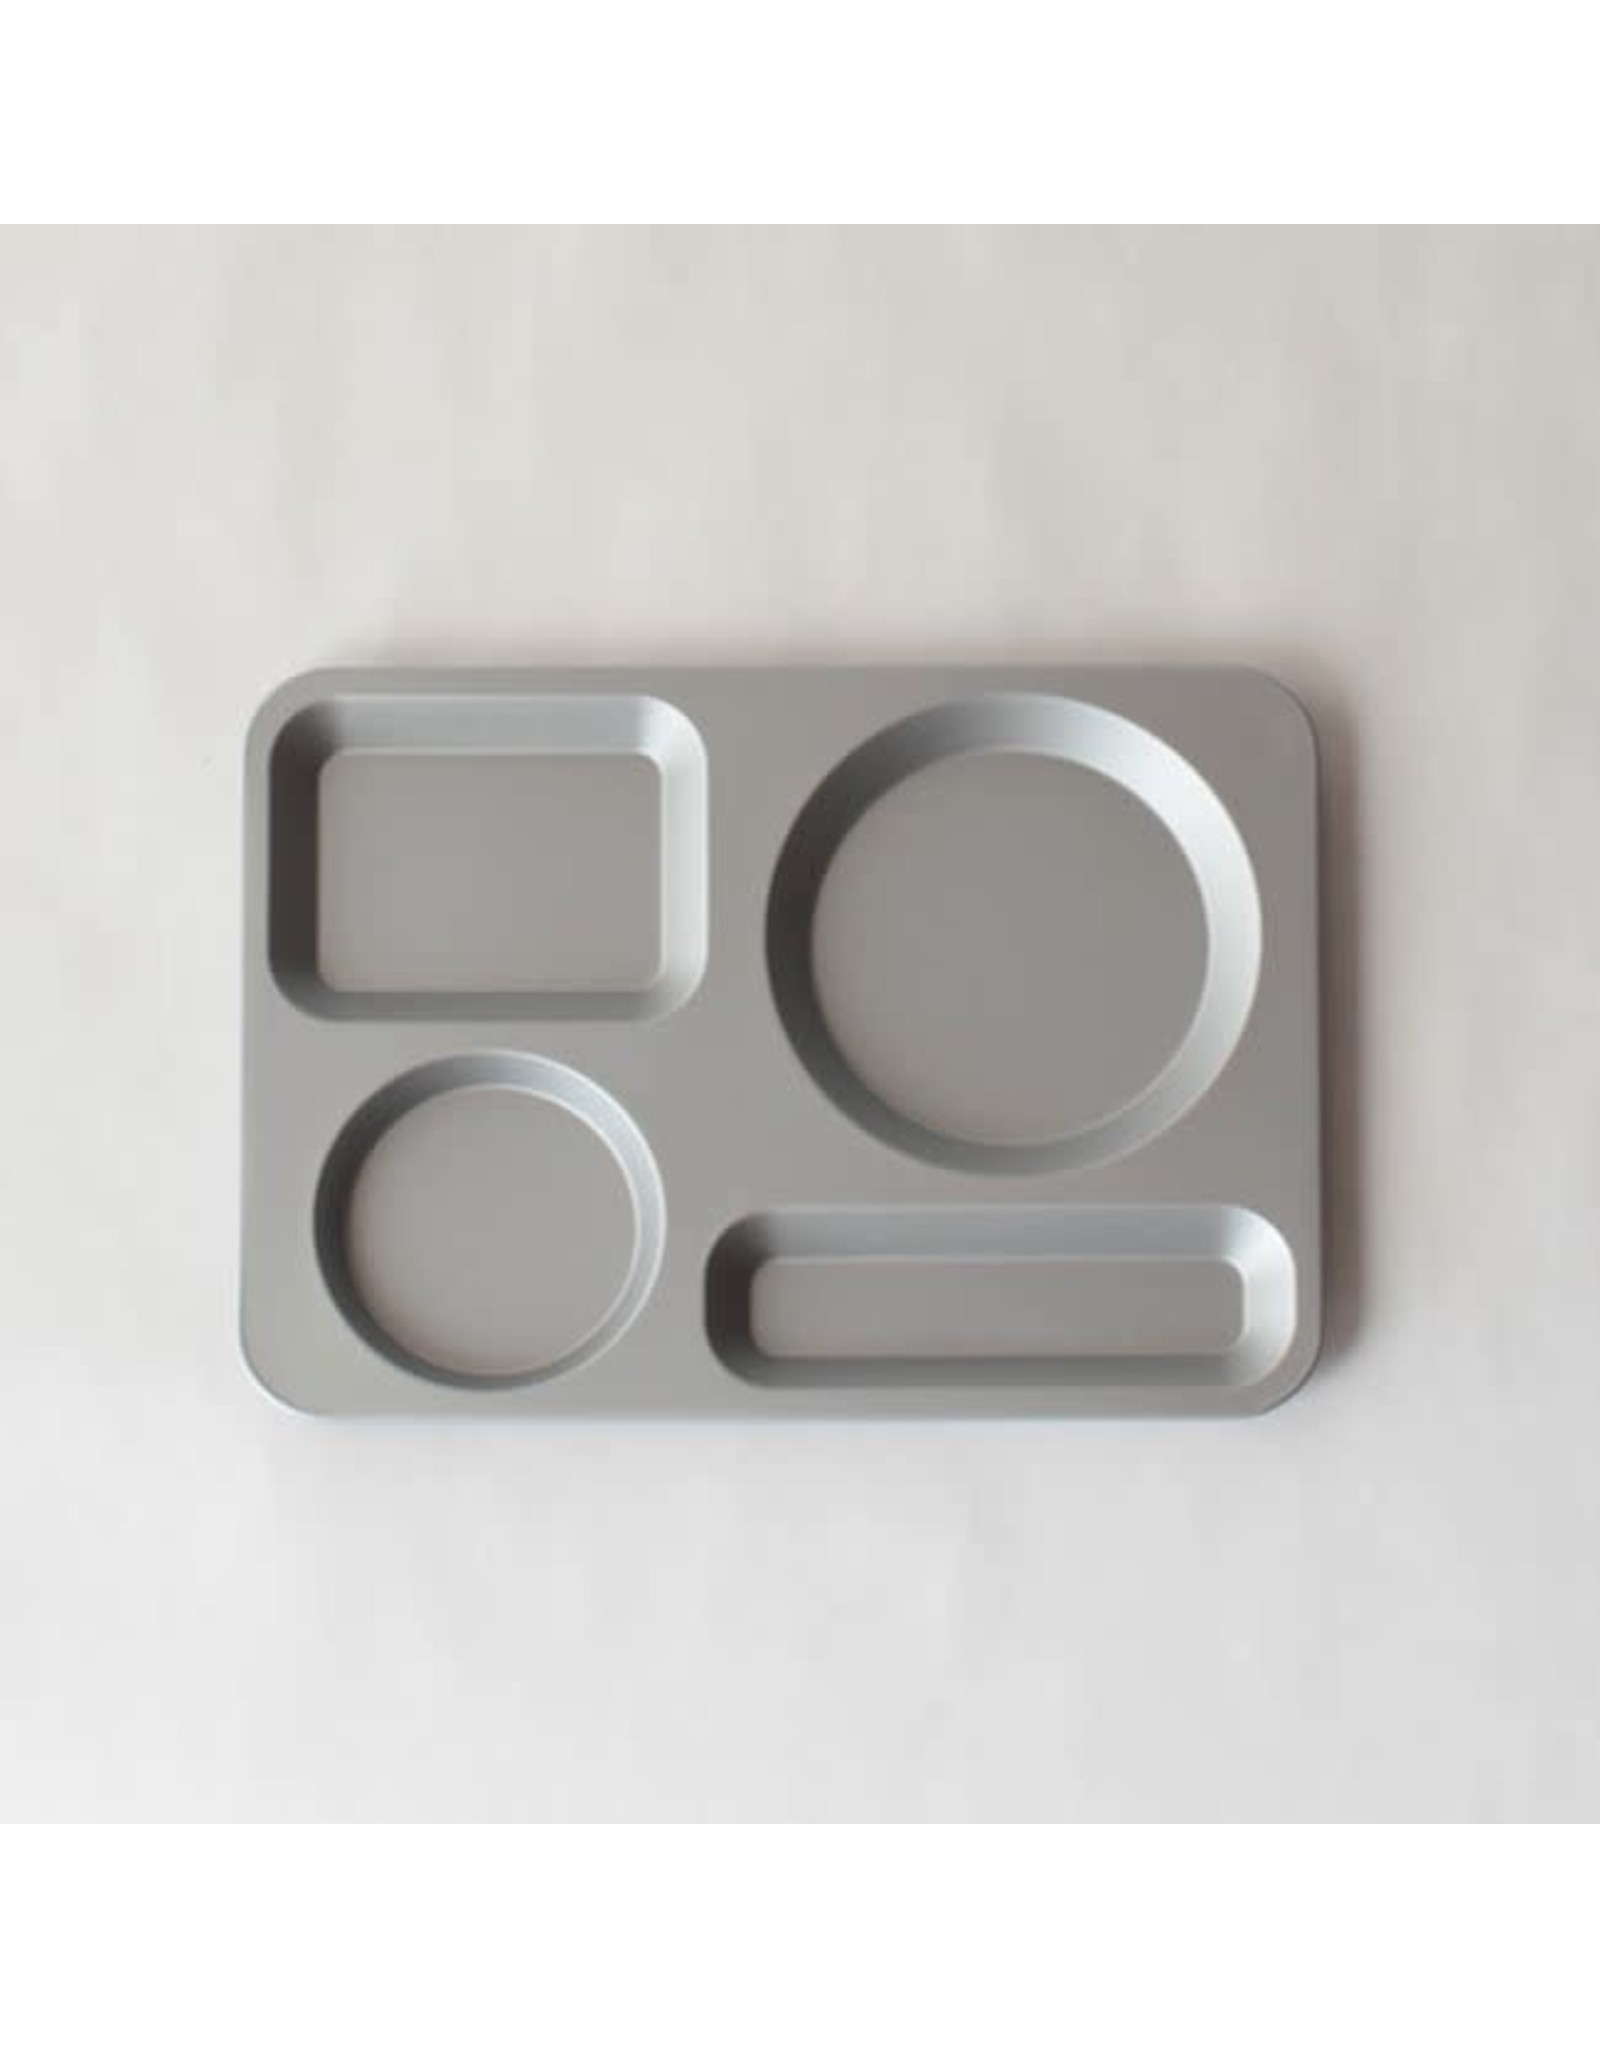 GSP GSP TSUBAME CAFE TRAY COLORS GRAY